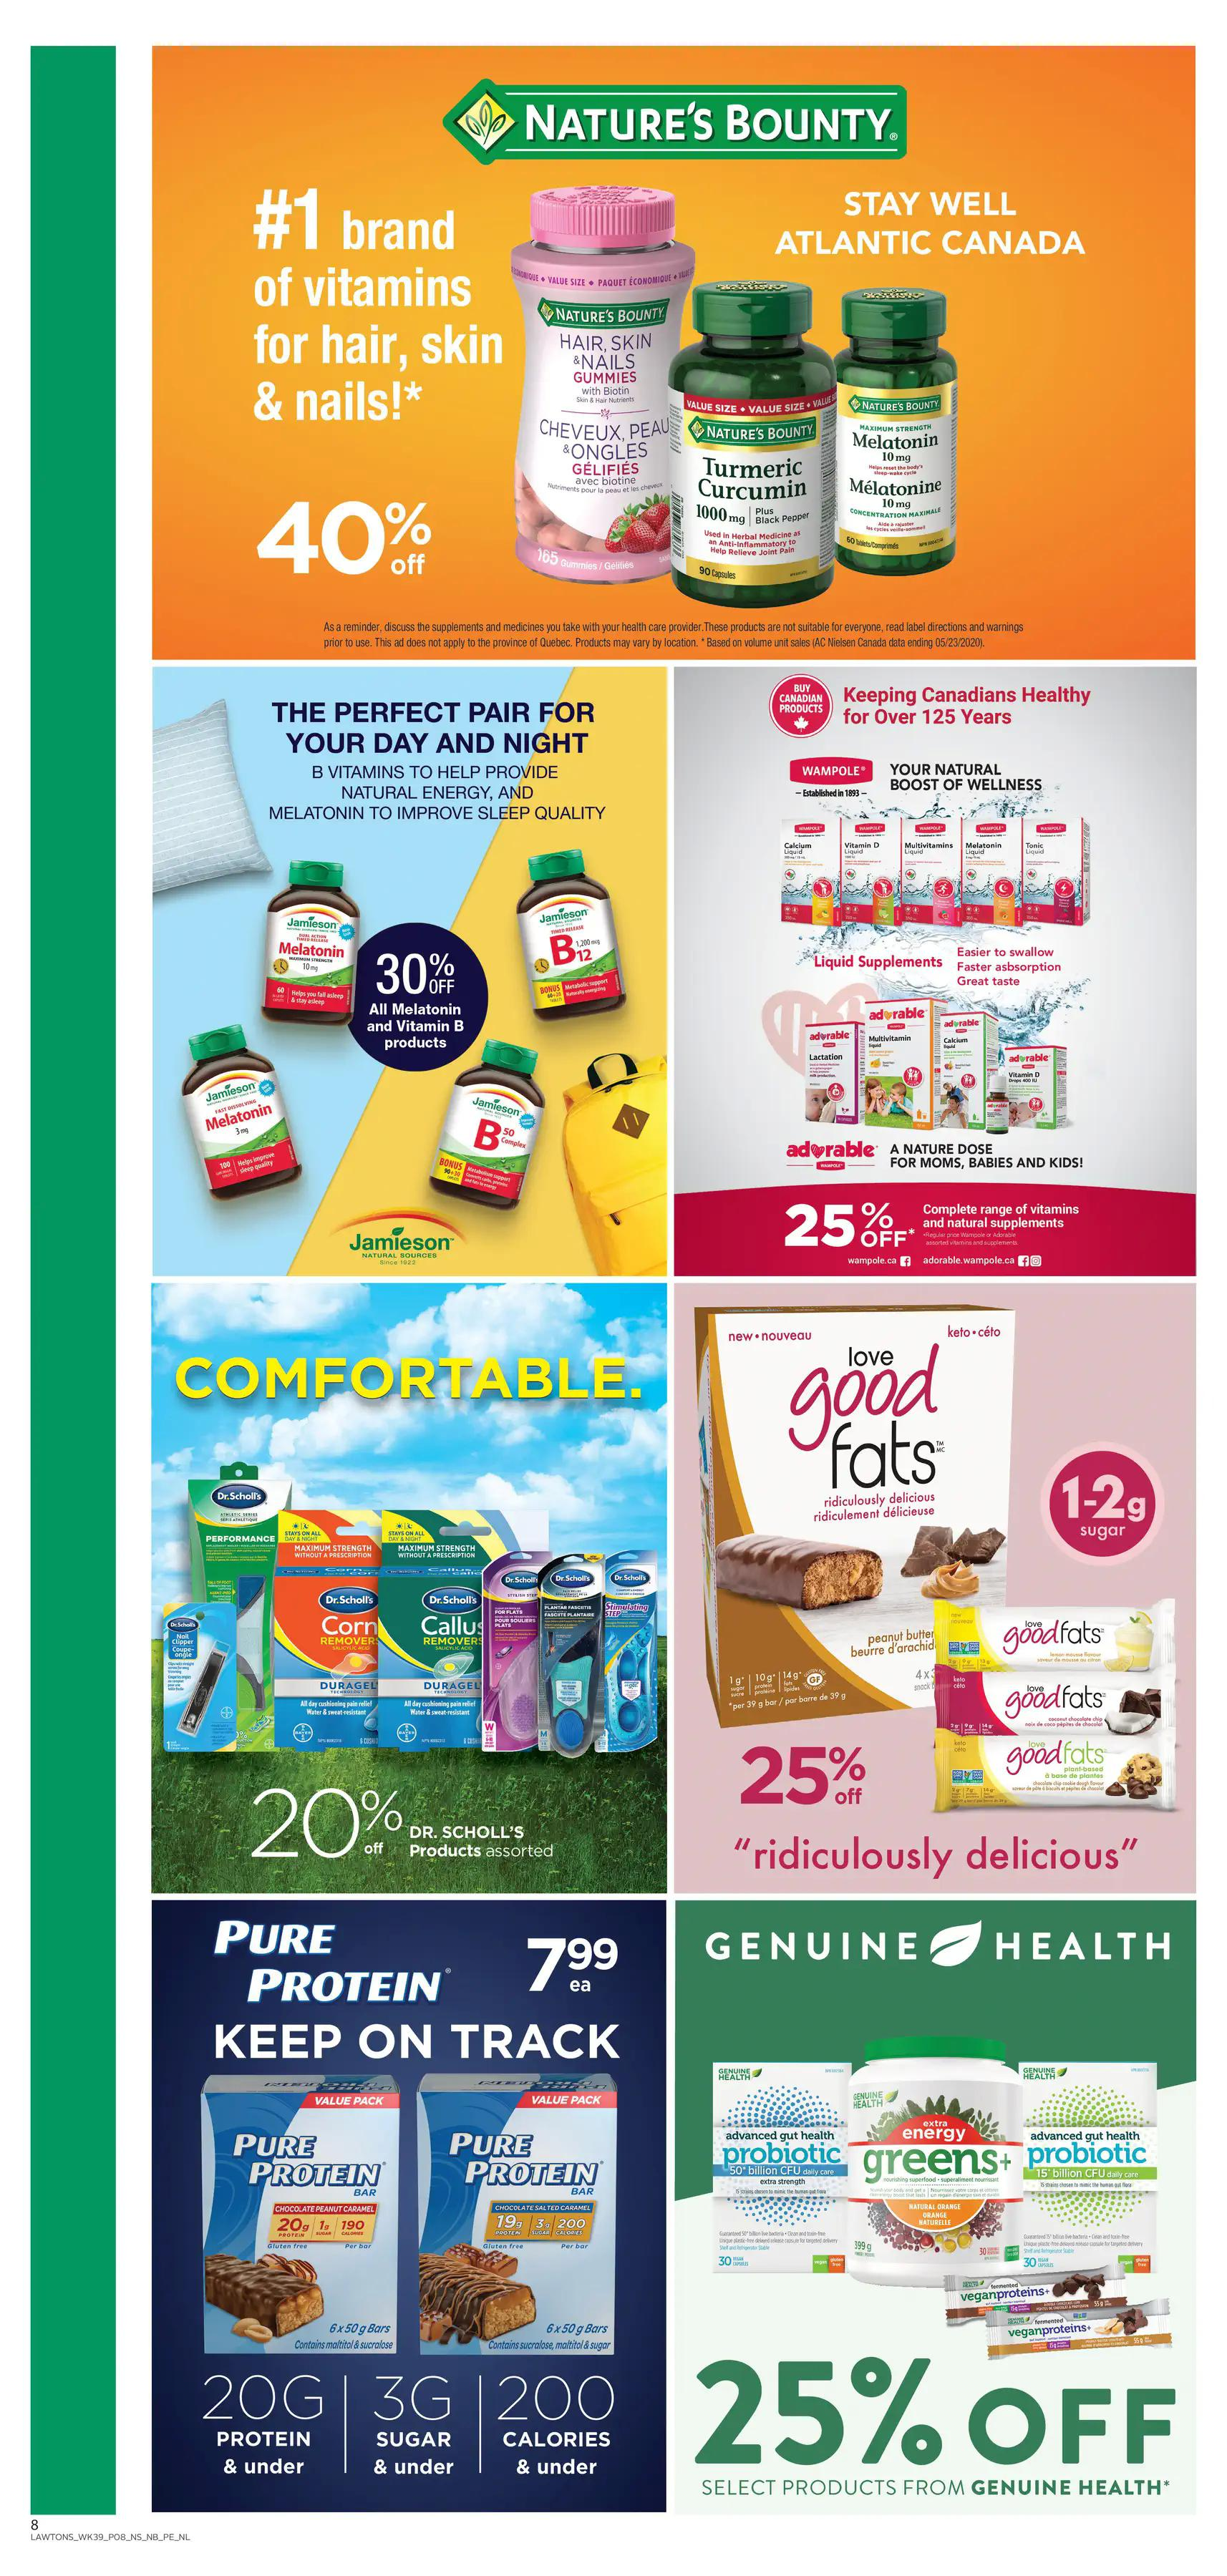 Lawtons Drugs - Weekly Flyer Specials - Page 7